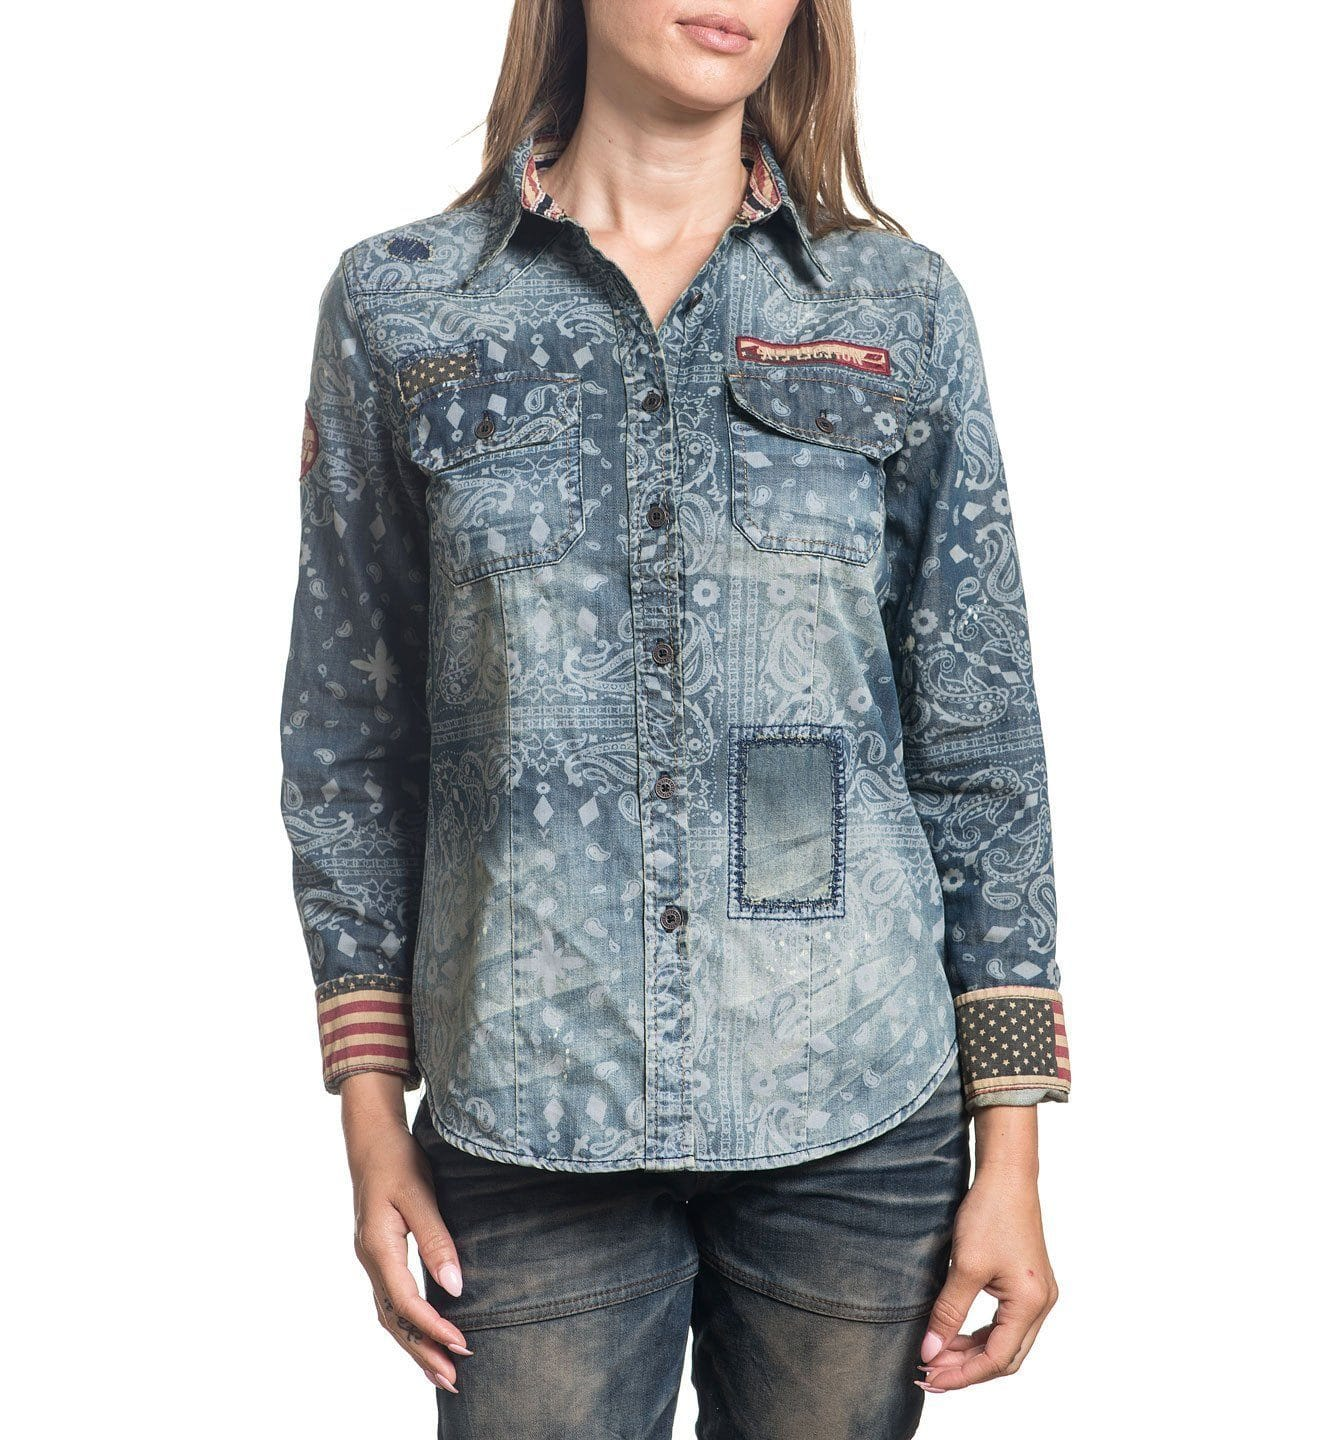 Paisley - Womens Button Down Tops - Affliction Clothing